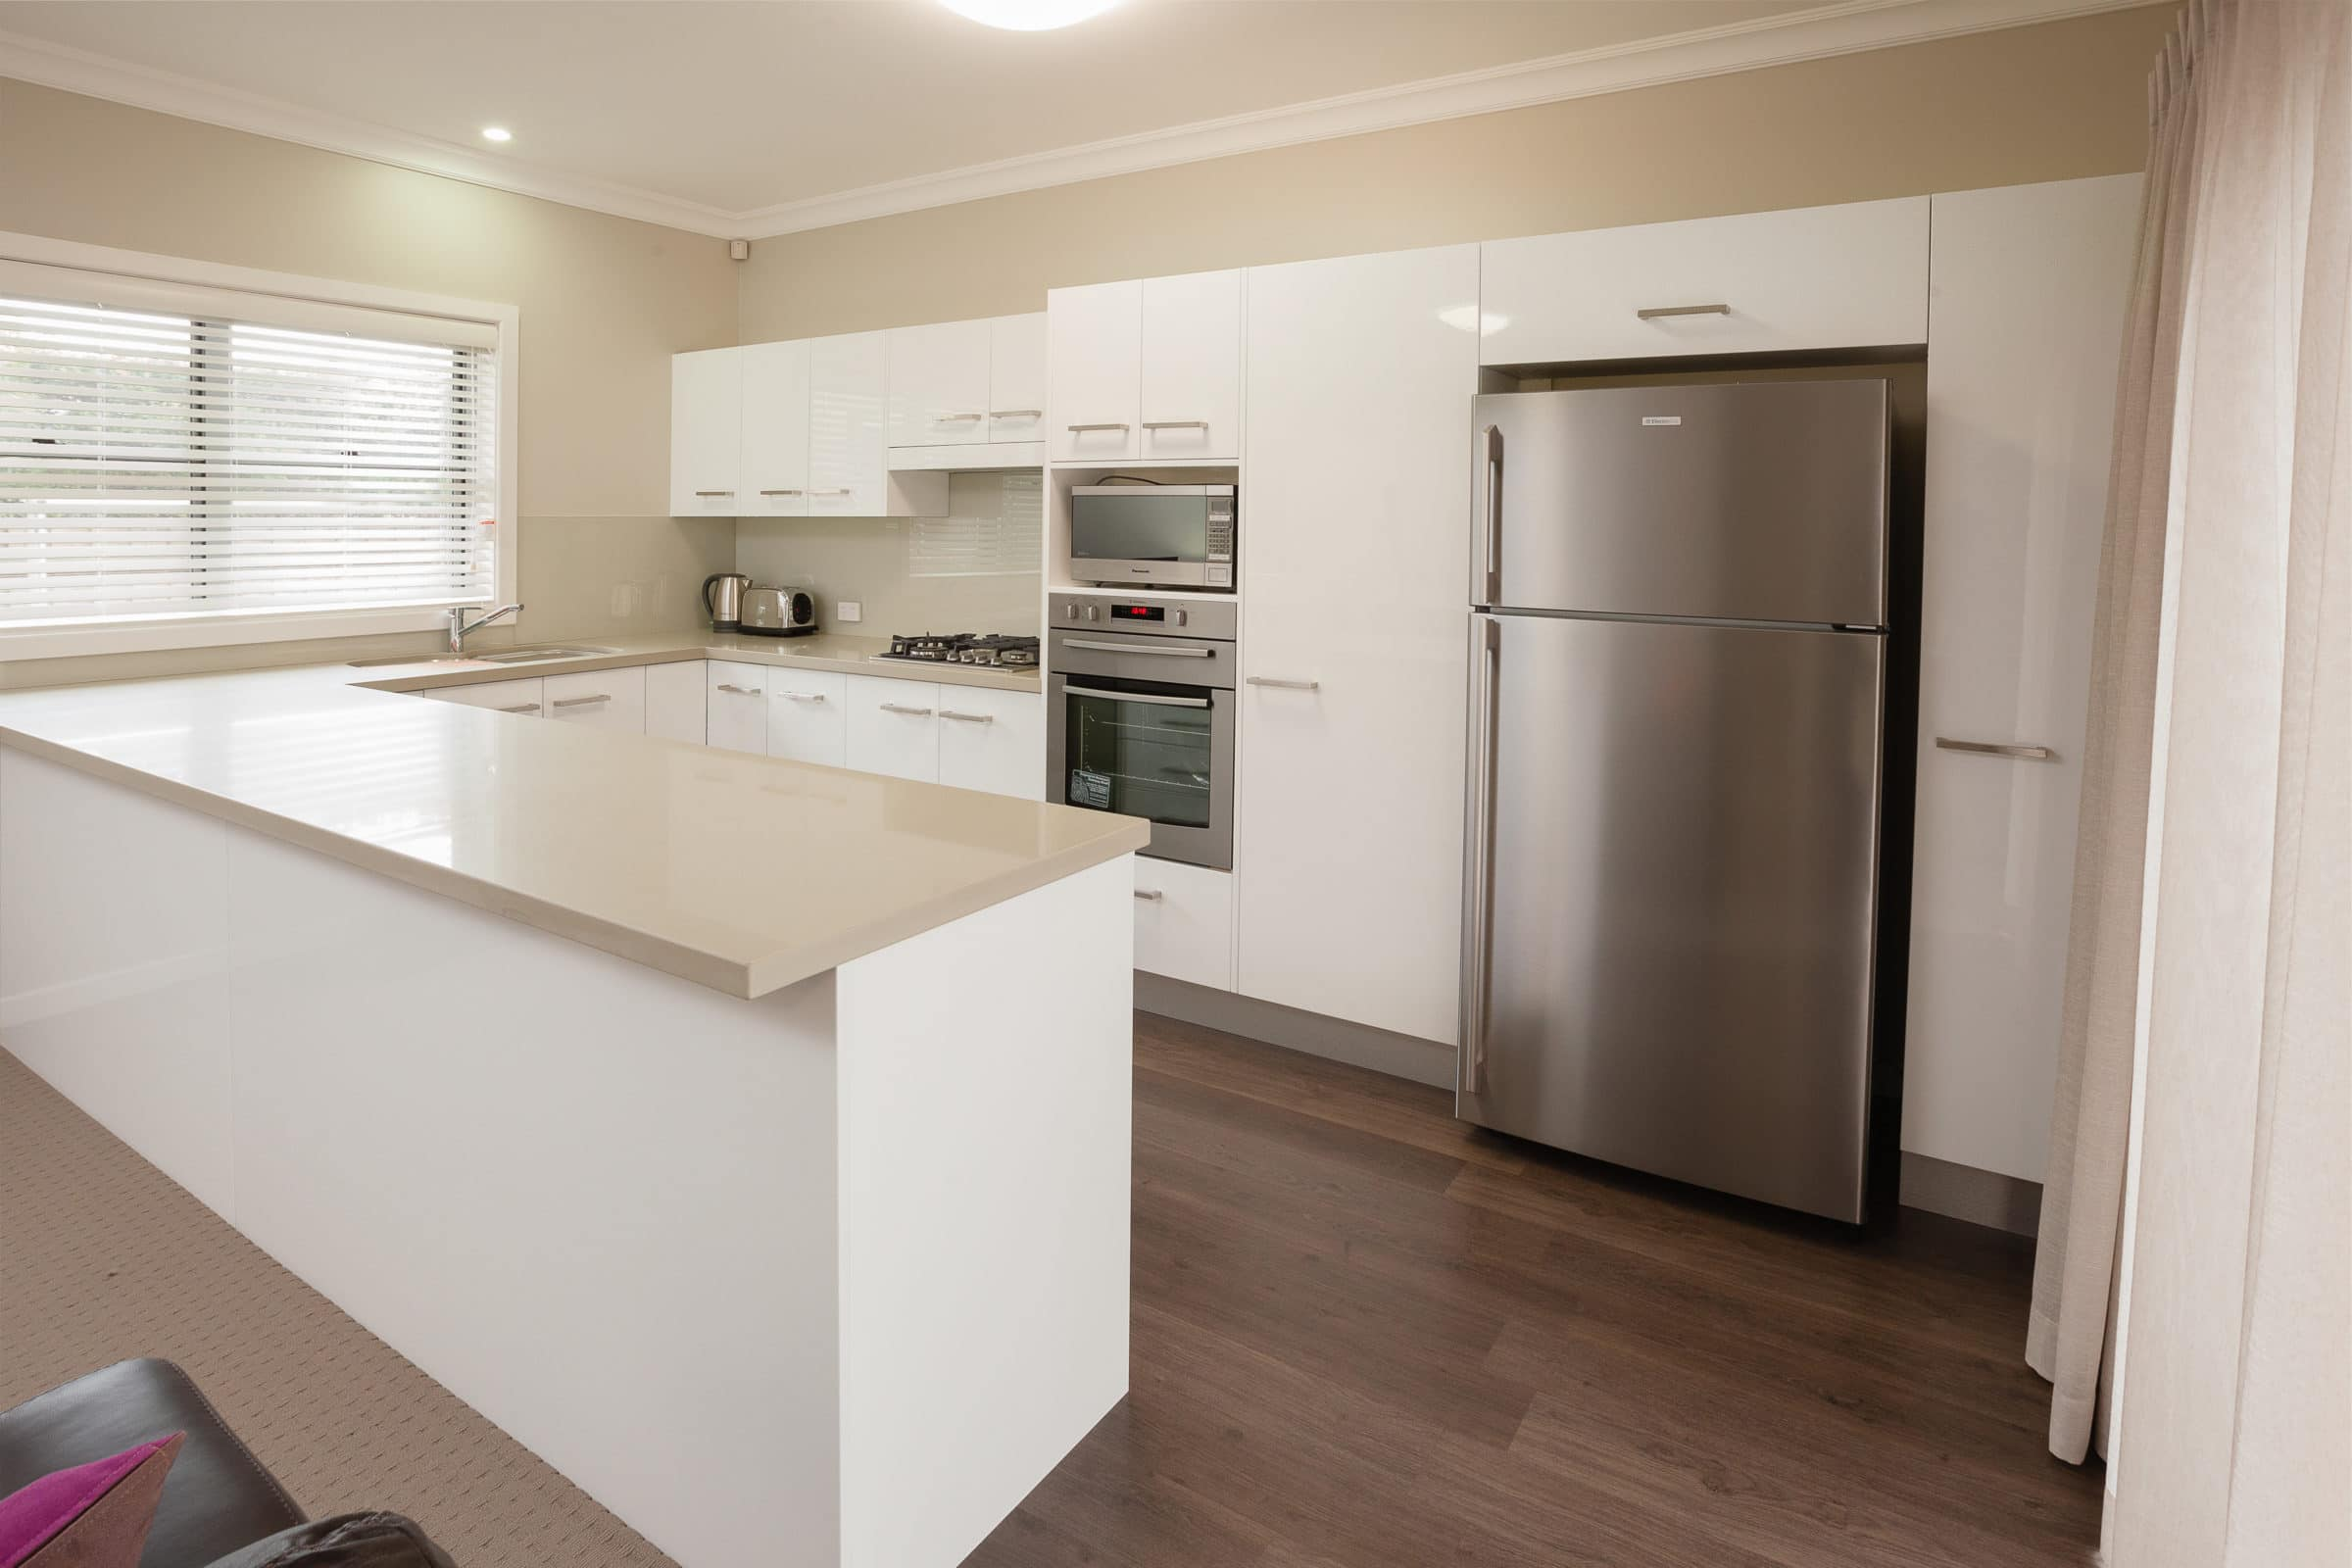 Everton Apartments - https://www.newcastleapartments.com.au/wp-content/uploads/2020/01/Everton_Street050-scaled.jpg